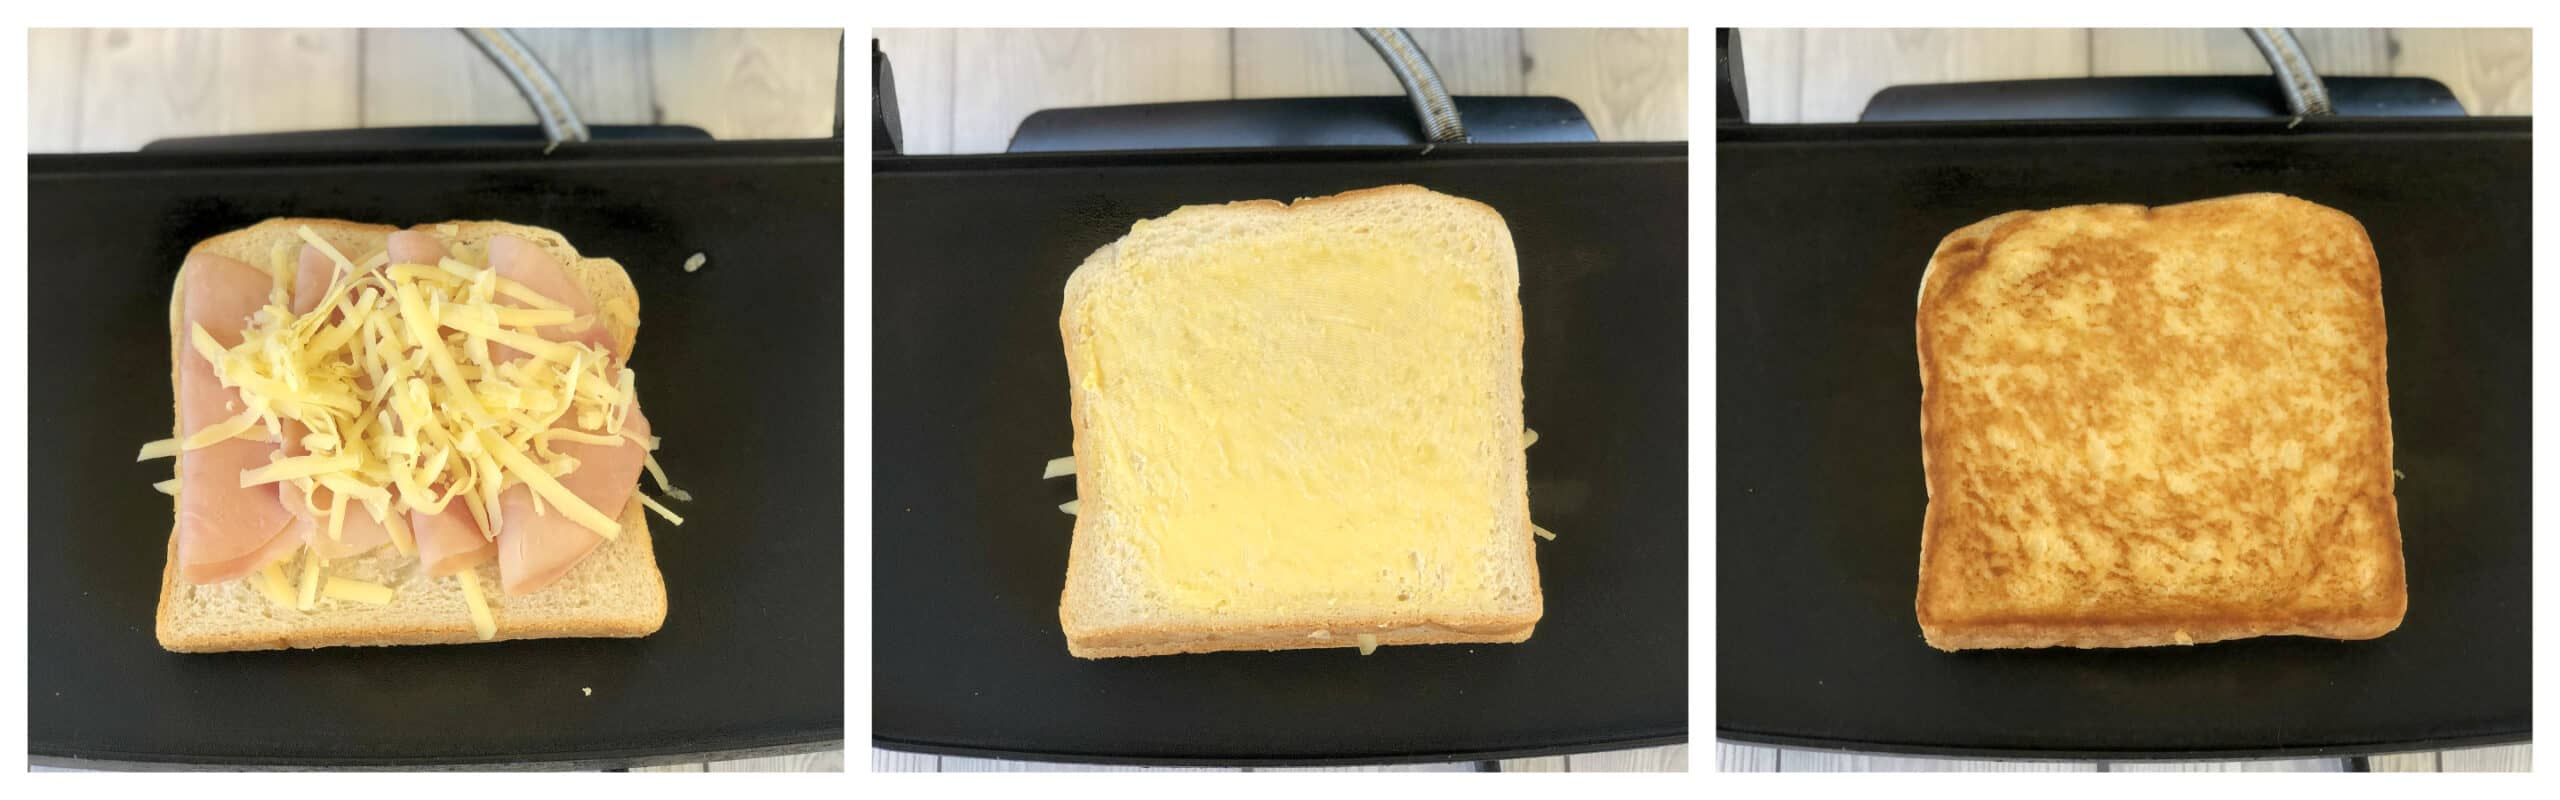 How to grill a toasted sandwich